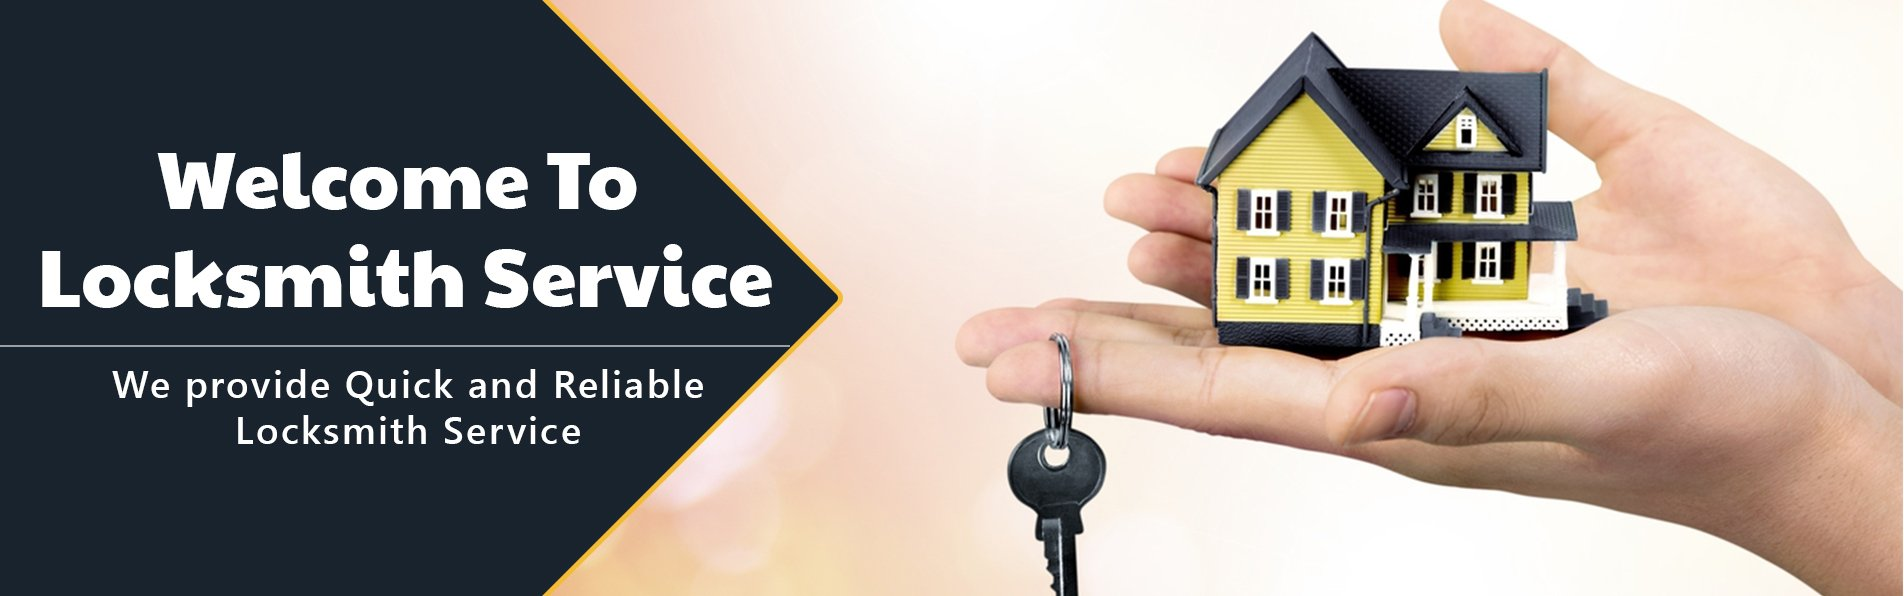 Gilpin VA Locksmith Store, Richmond, VA 804-453-2469